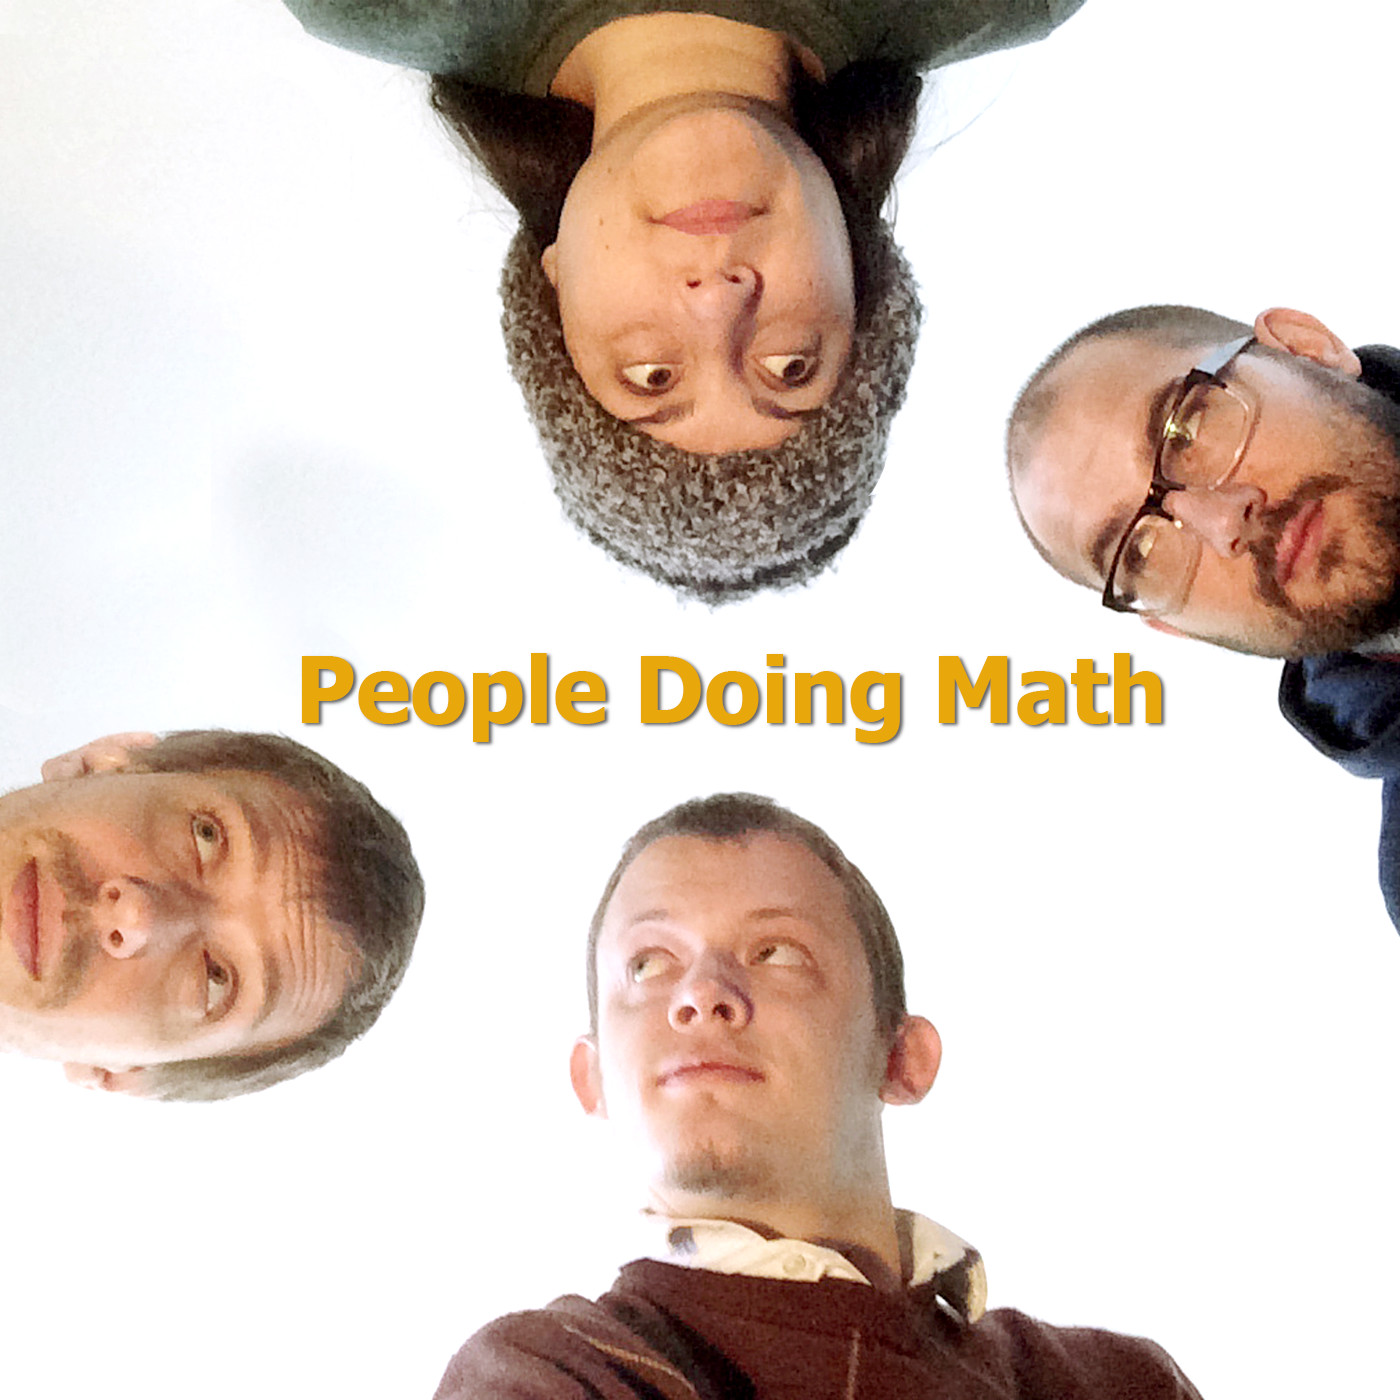 Episodes - People Doing Math